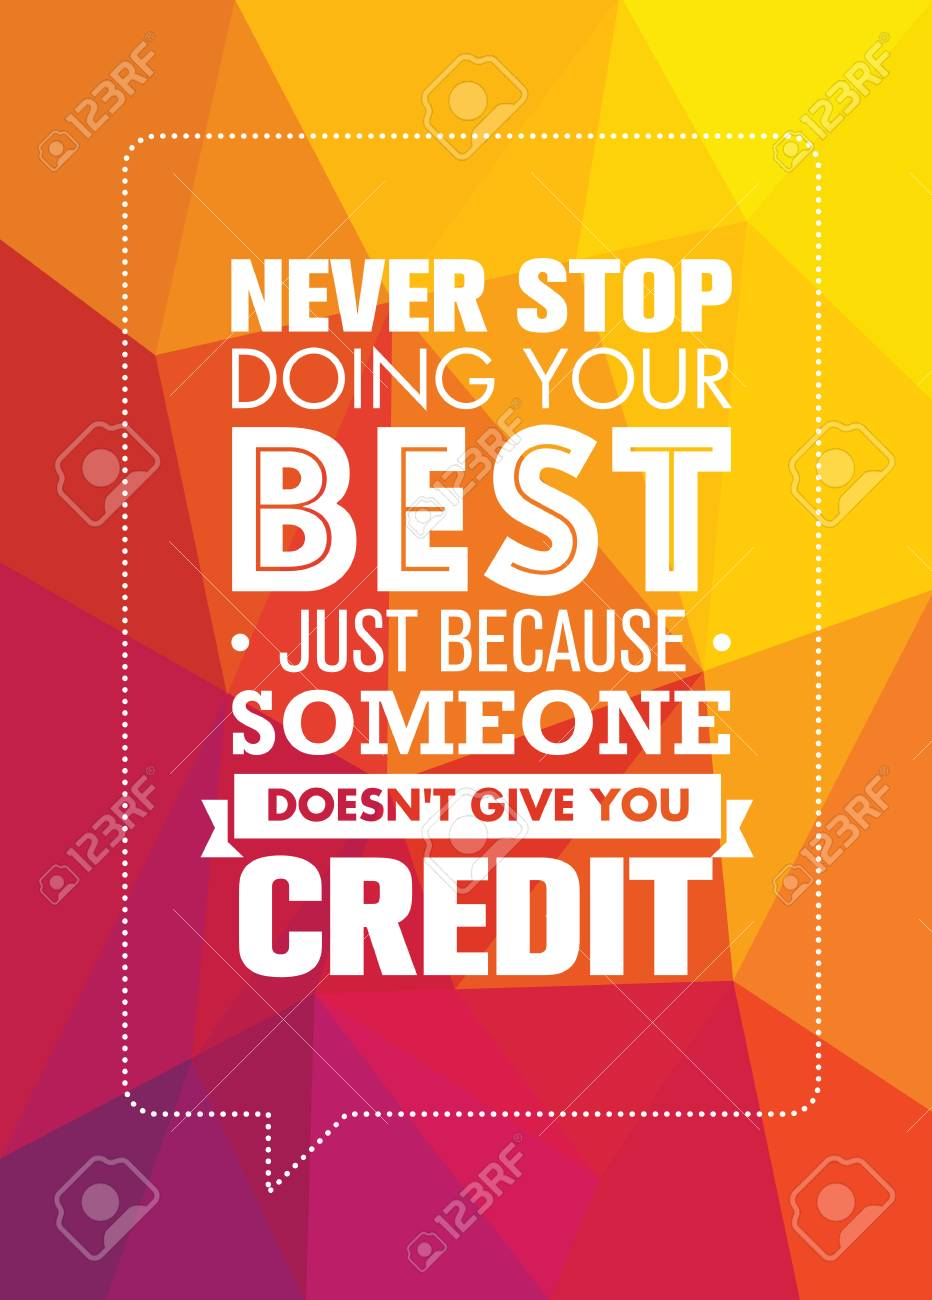 Never Stop Doing Your Best Just Because Someone Does Not Give